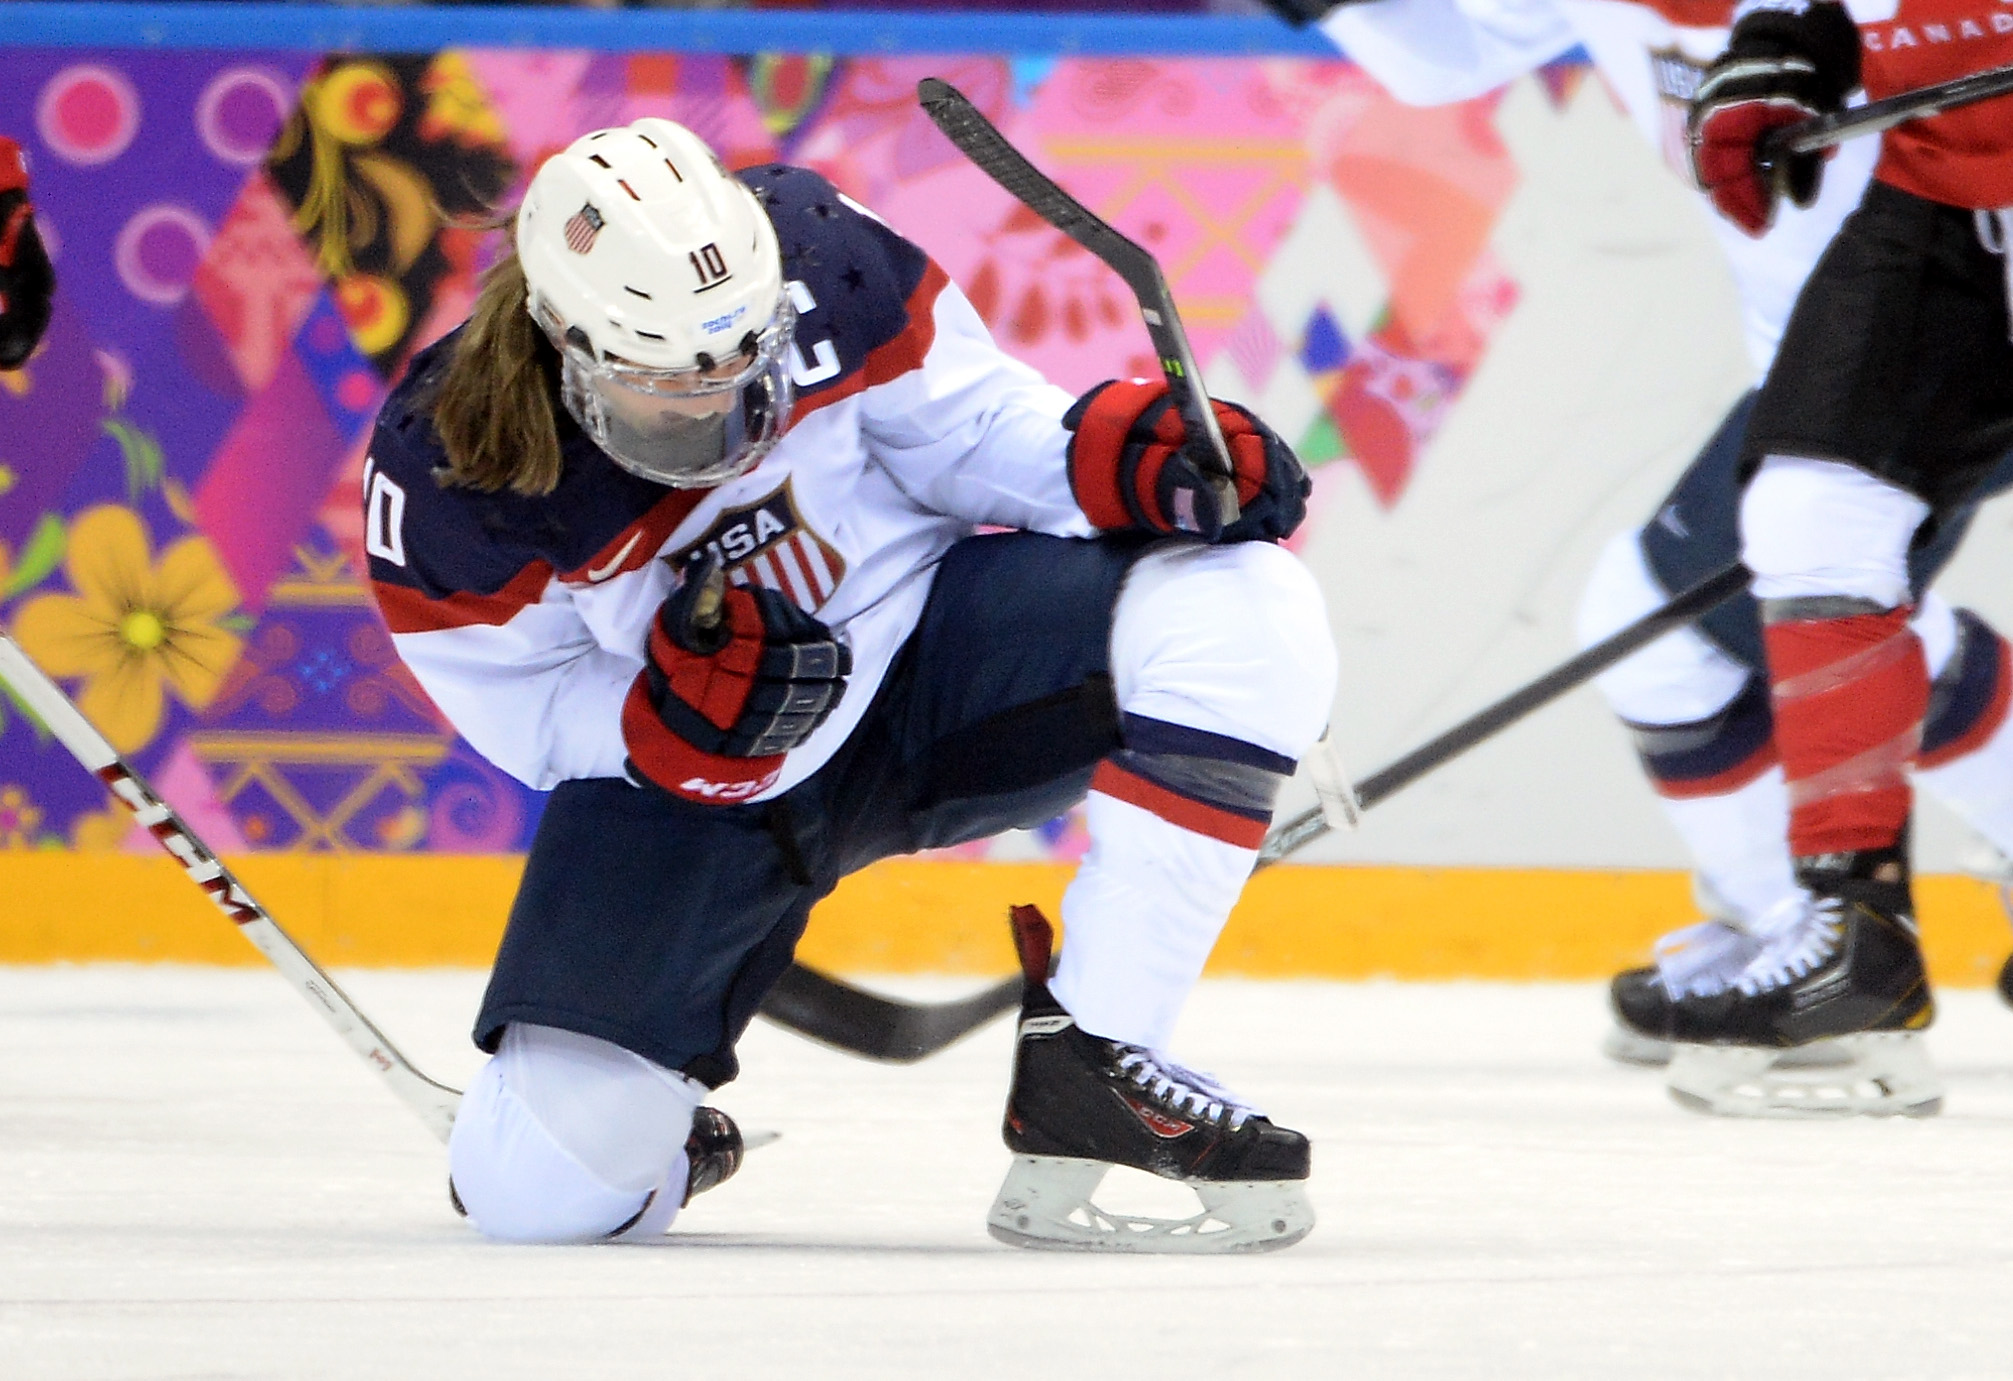 Meghan Duggan and her teammates are prepared to sit out the IIHF Women's World Championships in order to get an equitable deal from USA Hockey.  (Getty Images)